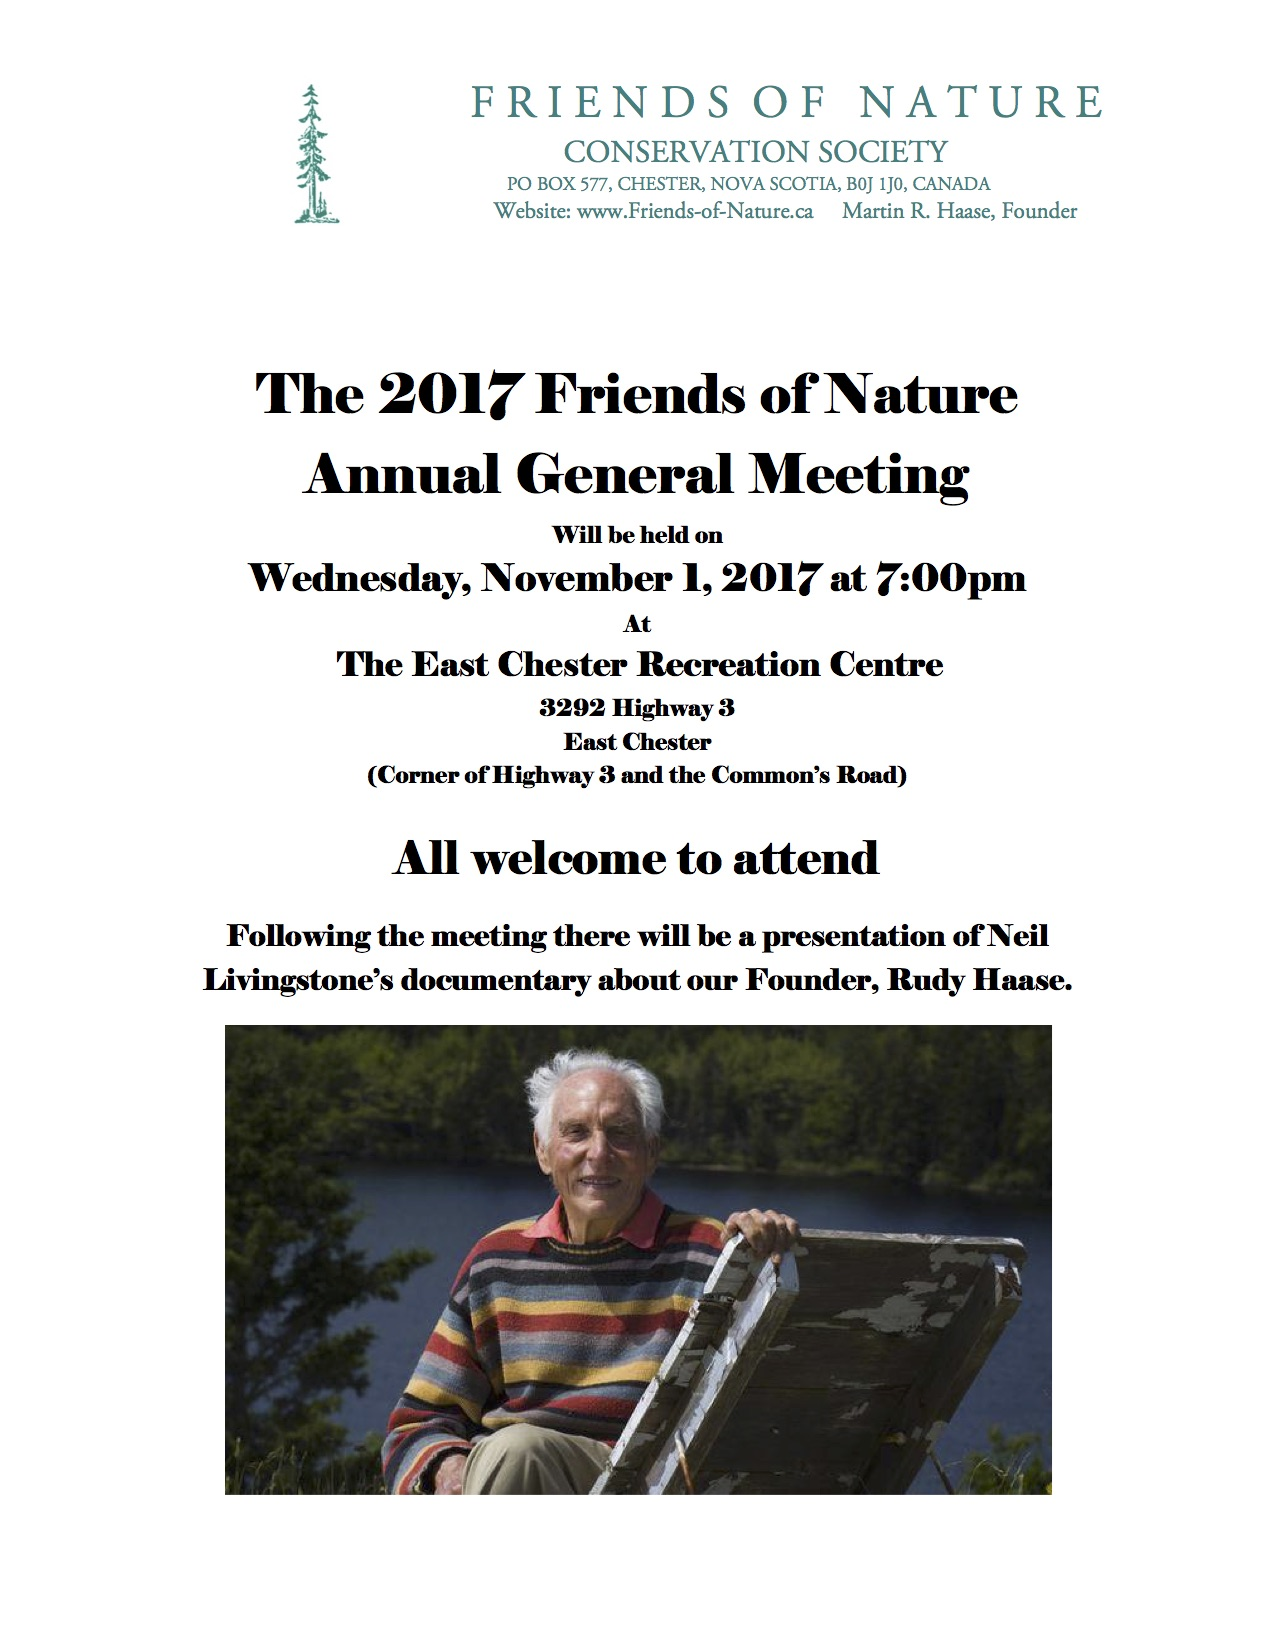 The 2017 Friends of Nature Annual General Meeting